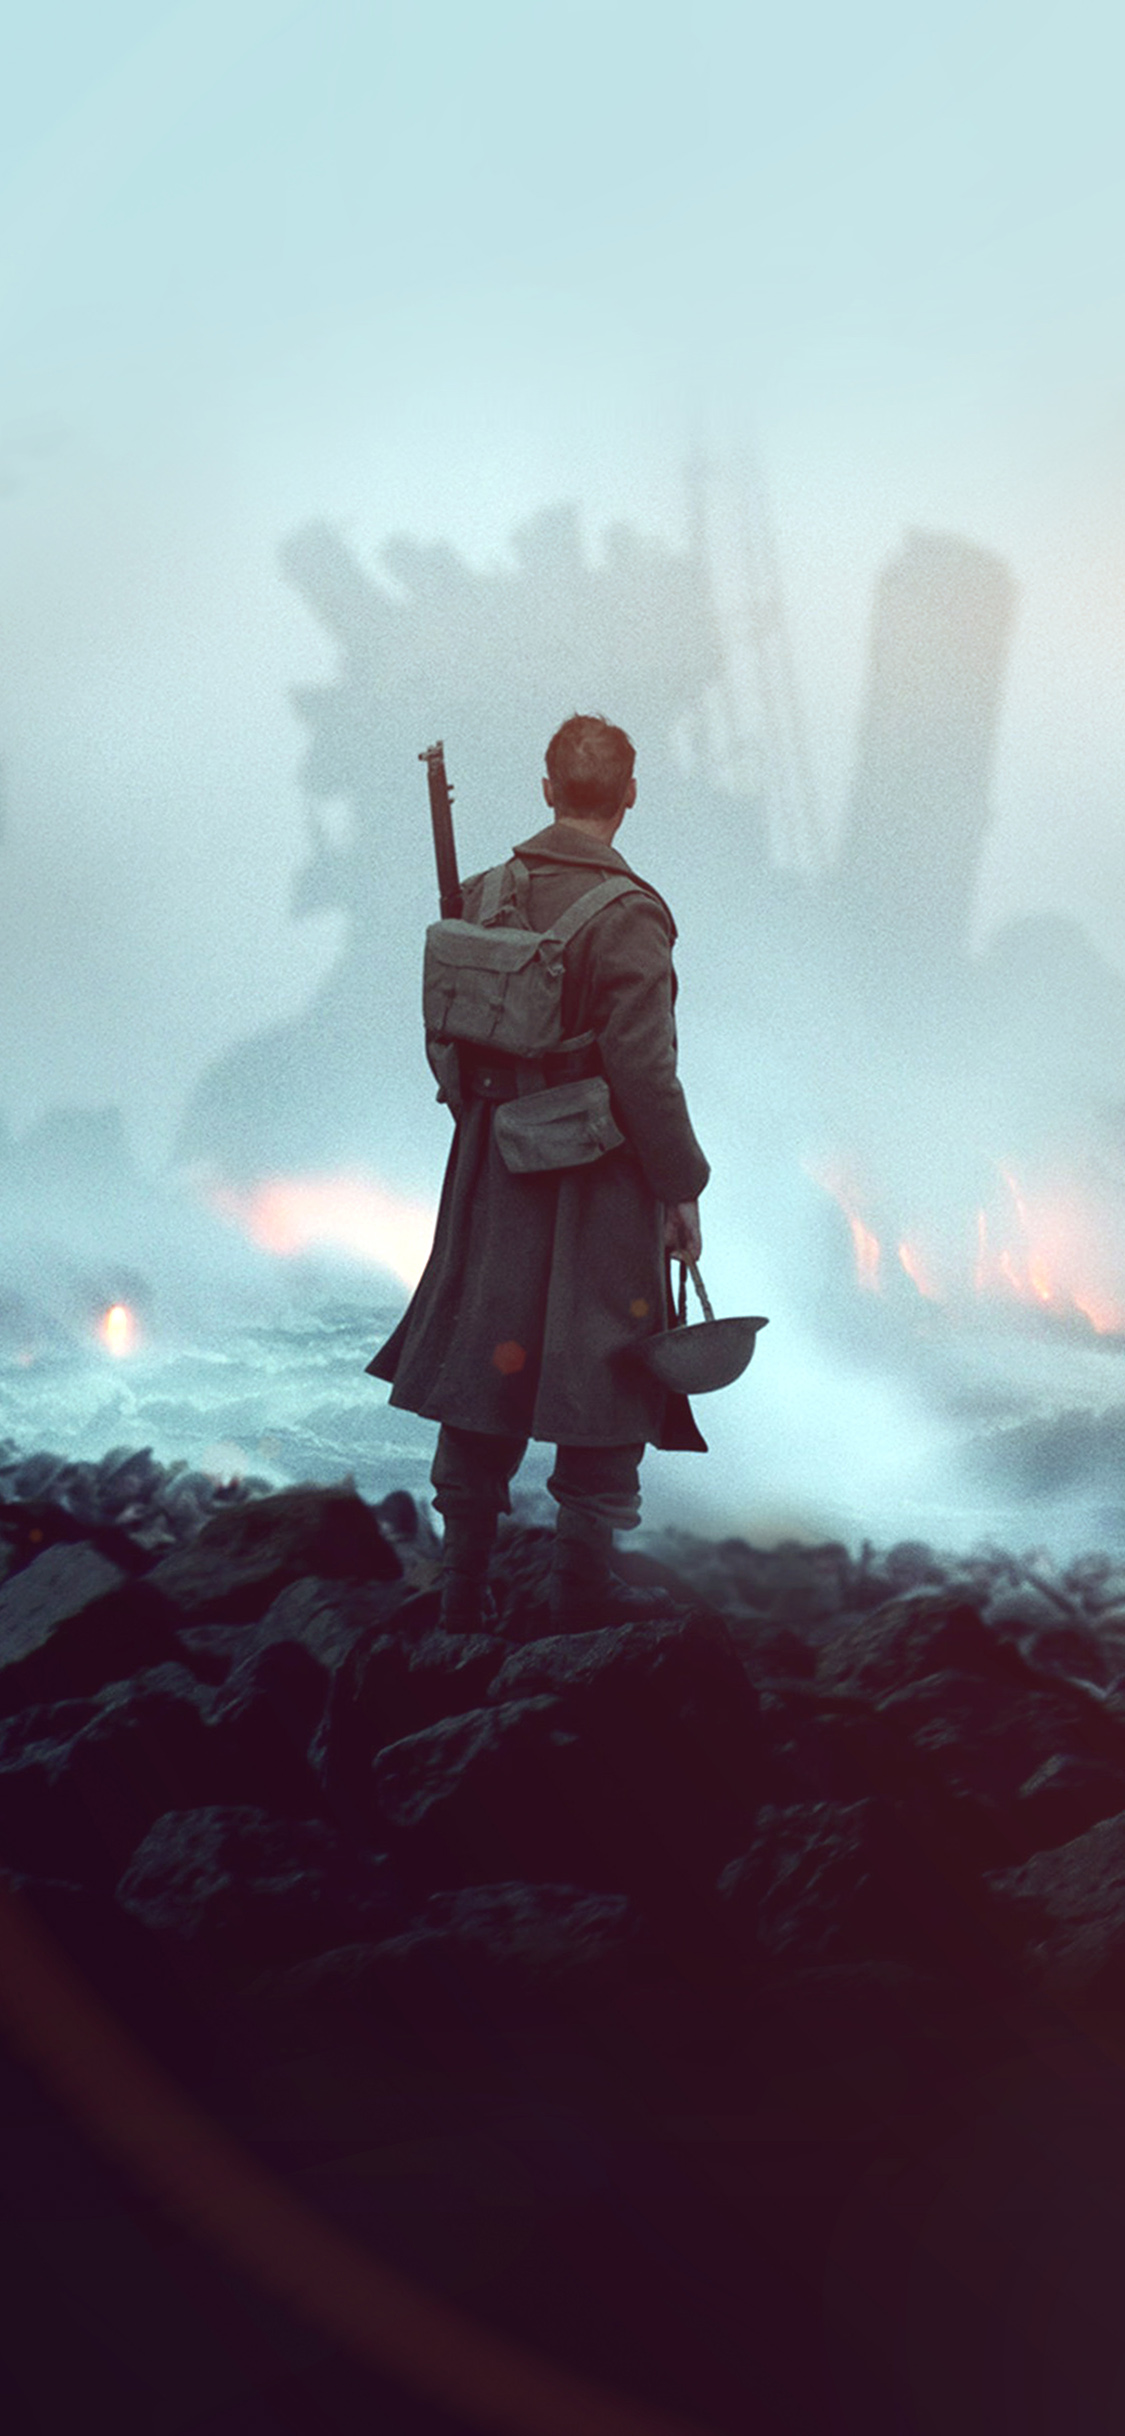 iPhonexpapers.com-Apple-iPhone-wallpaper-ba21-dunkirk-war-film-illustration-art-flare